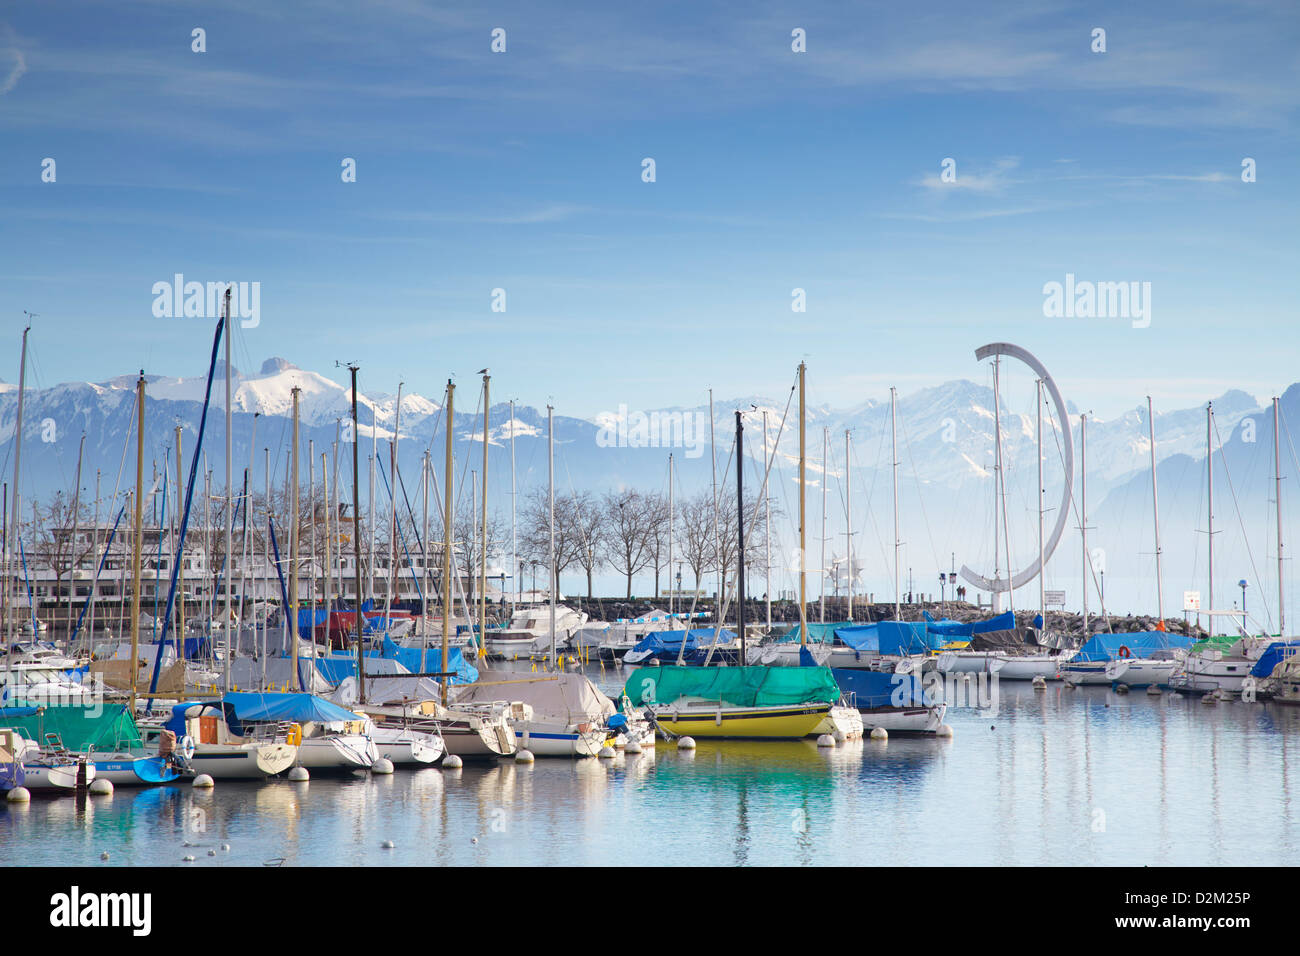 Ouchy harbour, Lausanne, Vaud, Switzerland - Stock Image